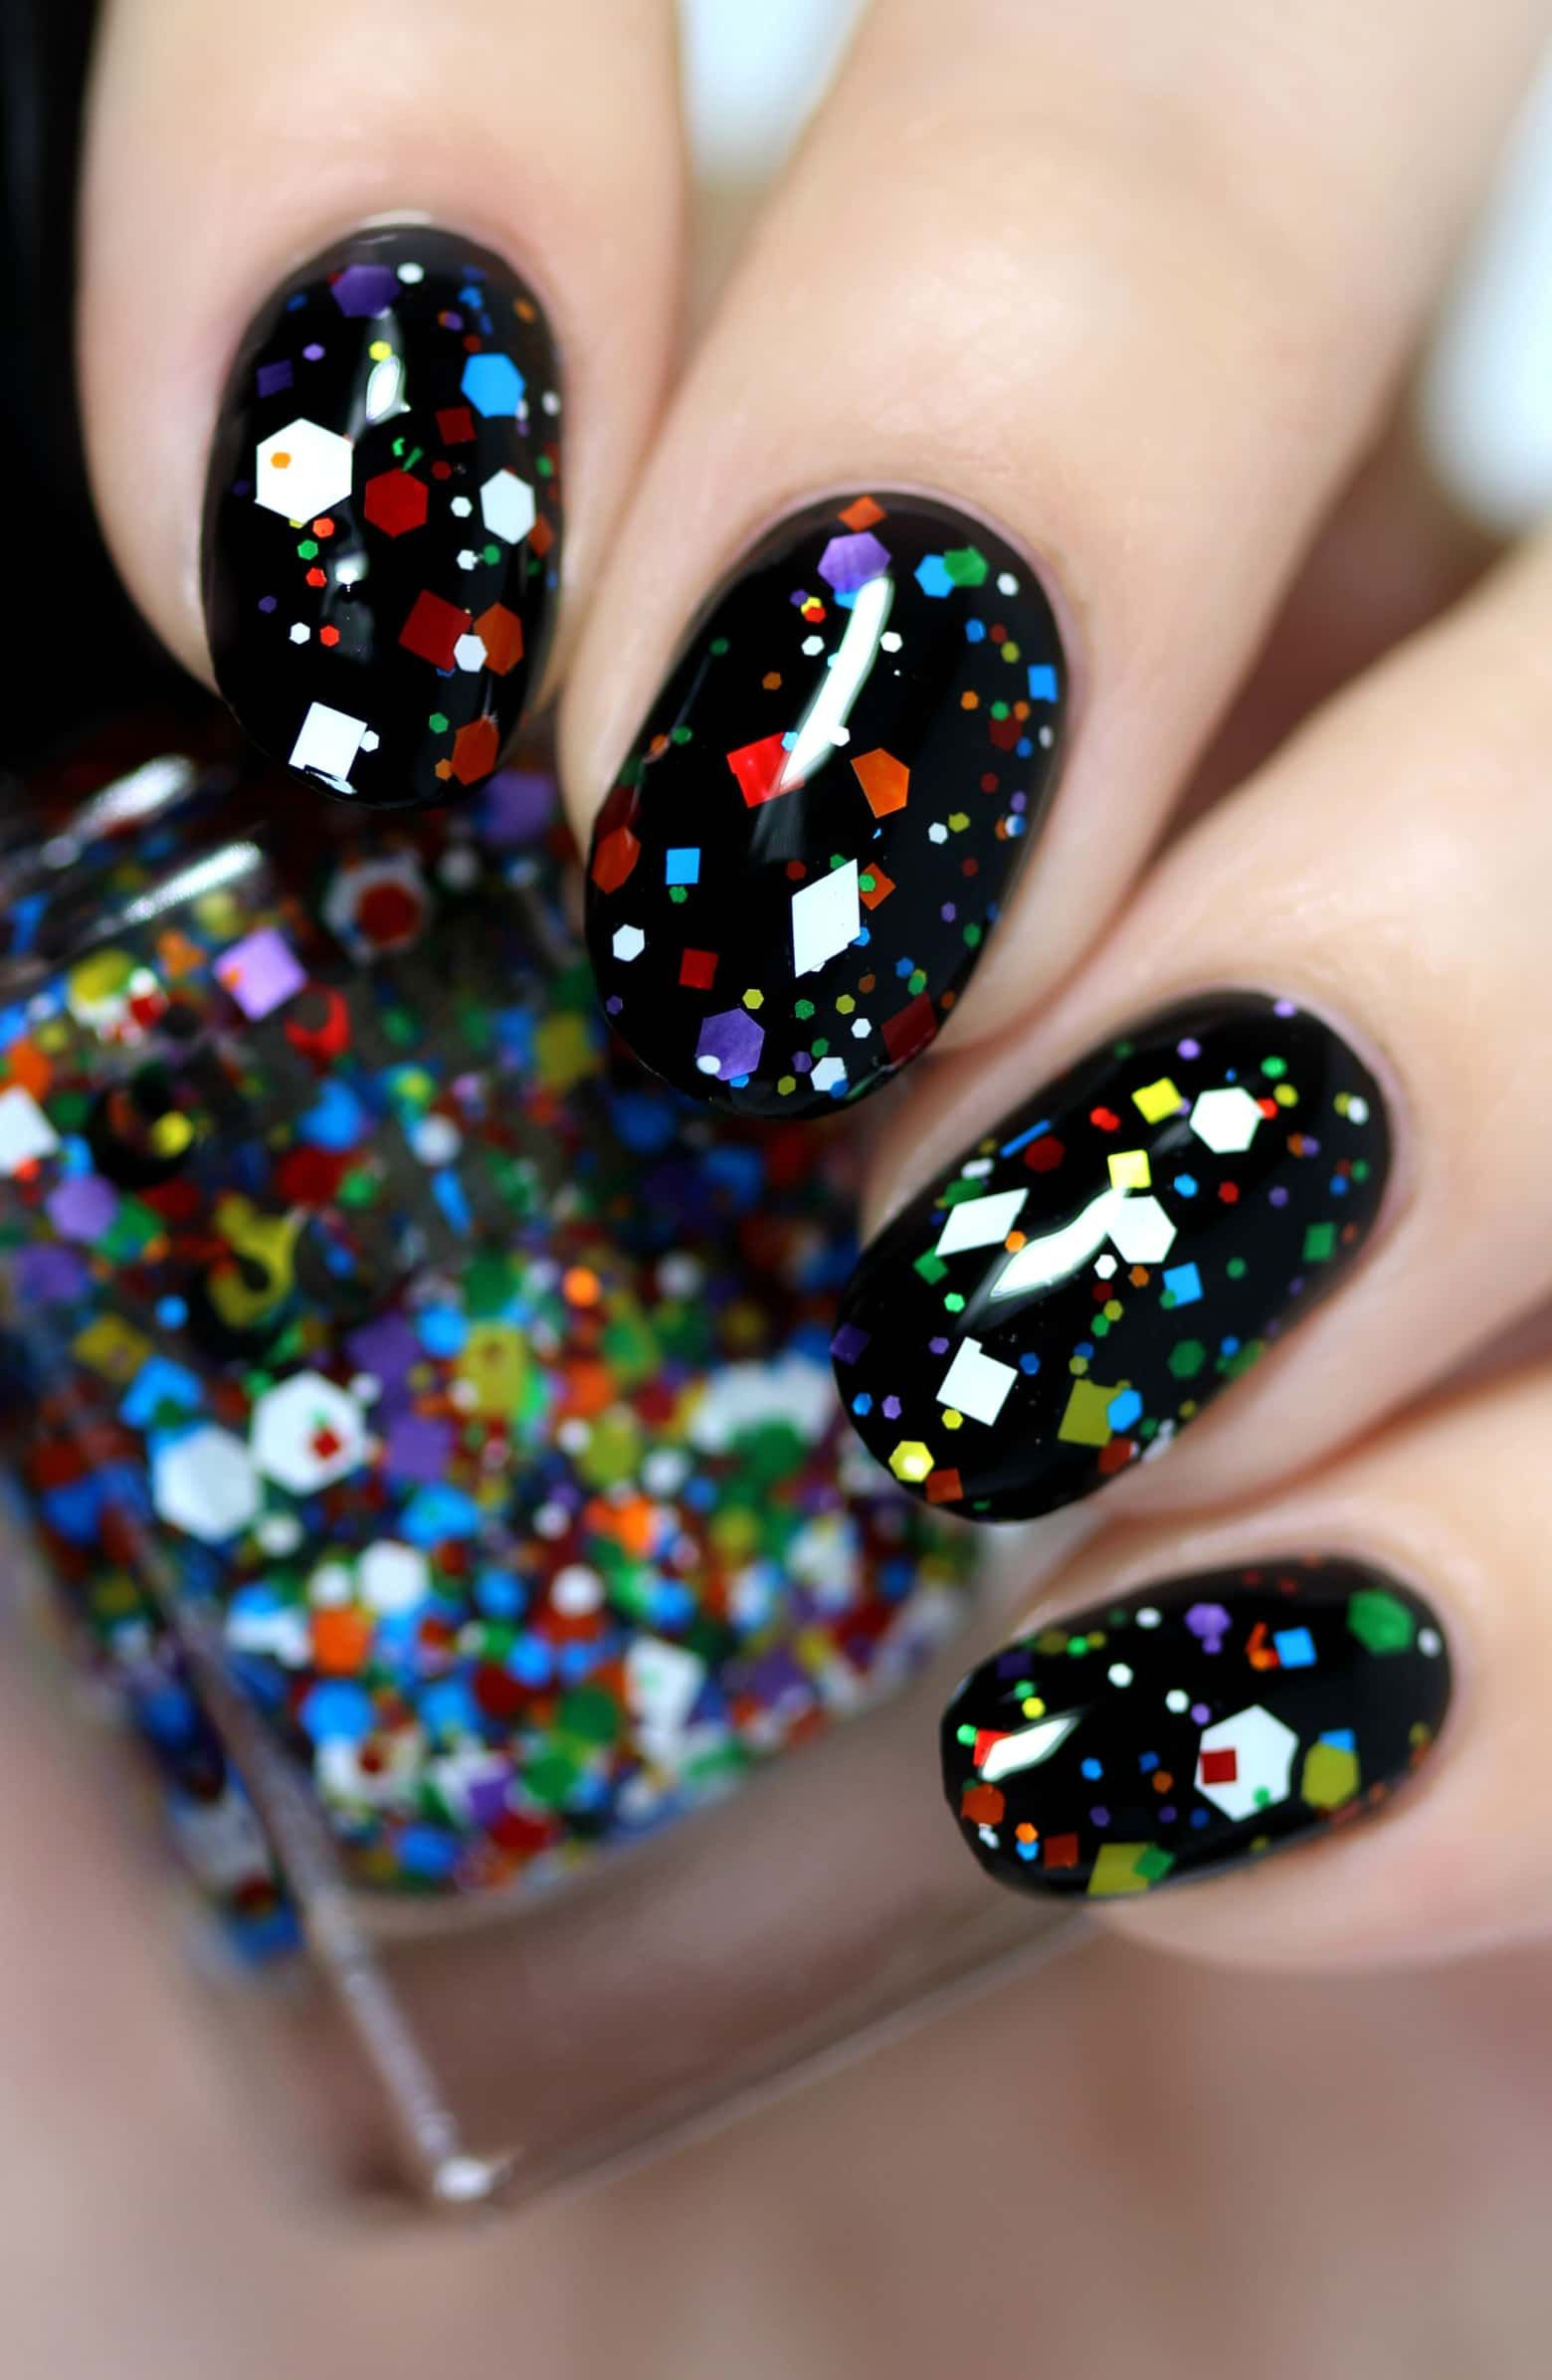 Festive nails for the holidays nail inspiration in